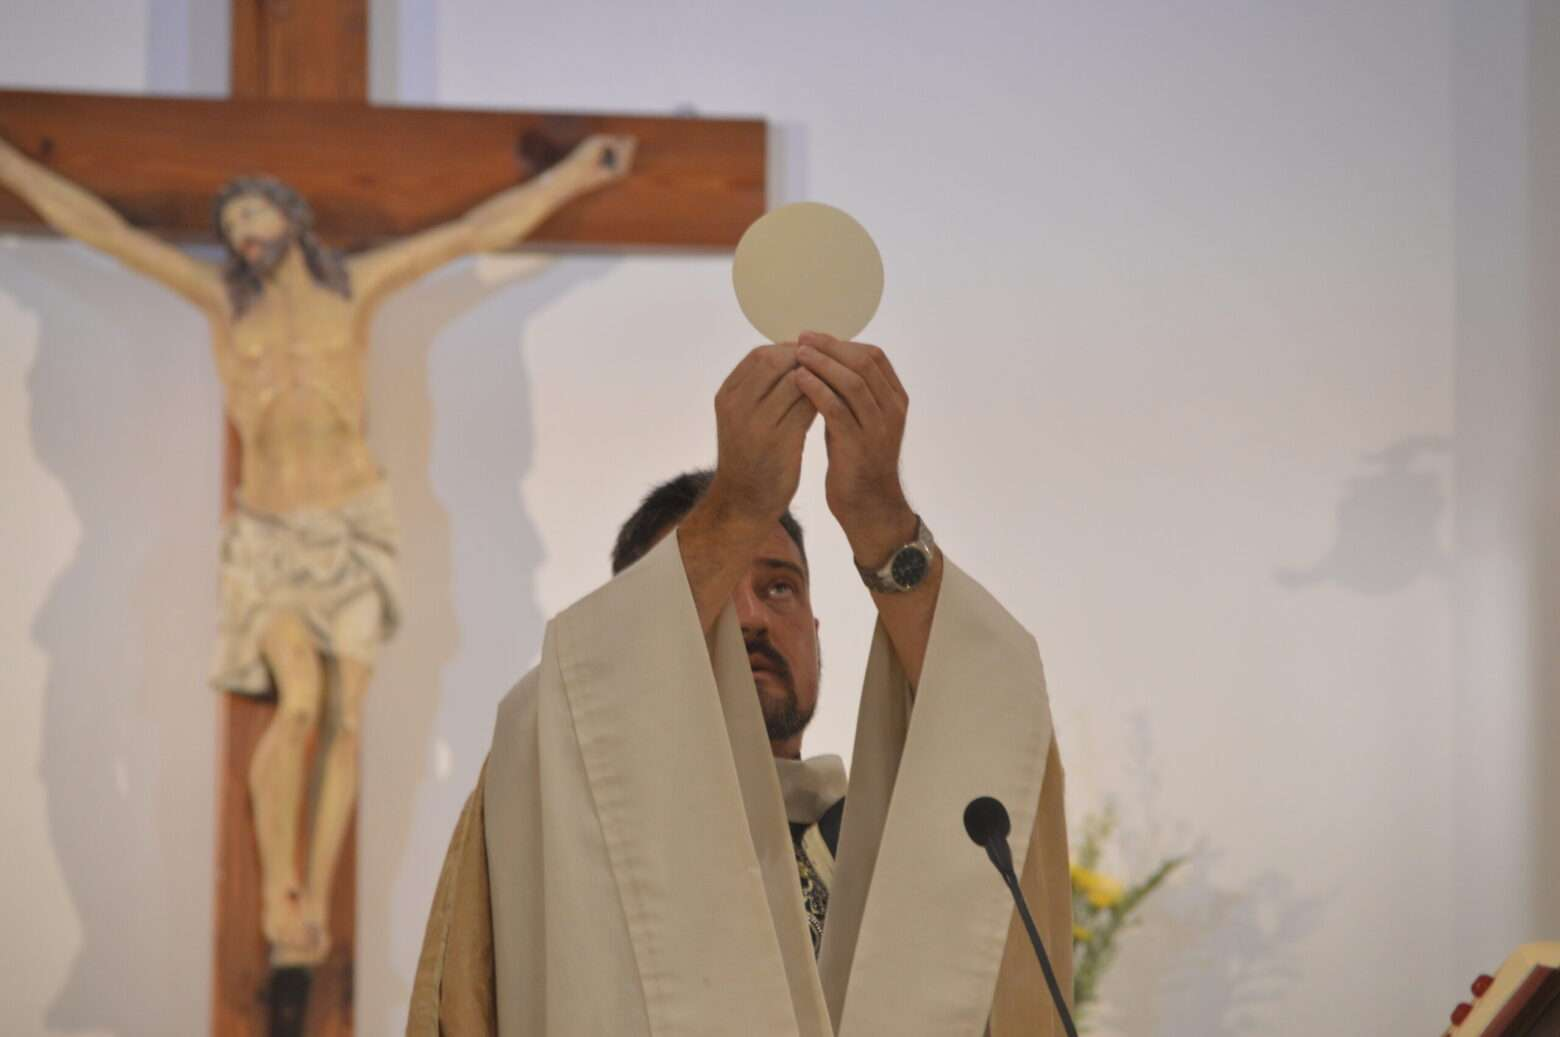 Video: Eucharistic host bleeding and pulsating like a heart on fire